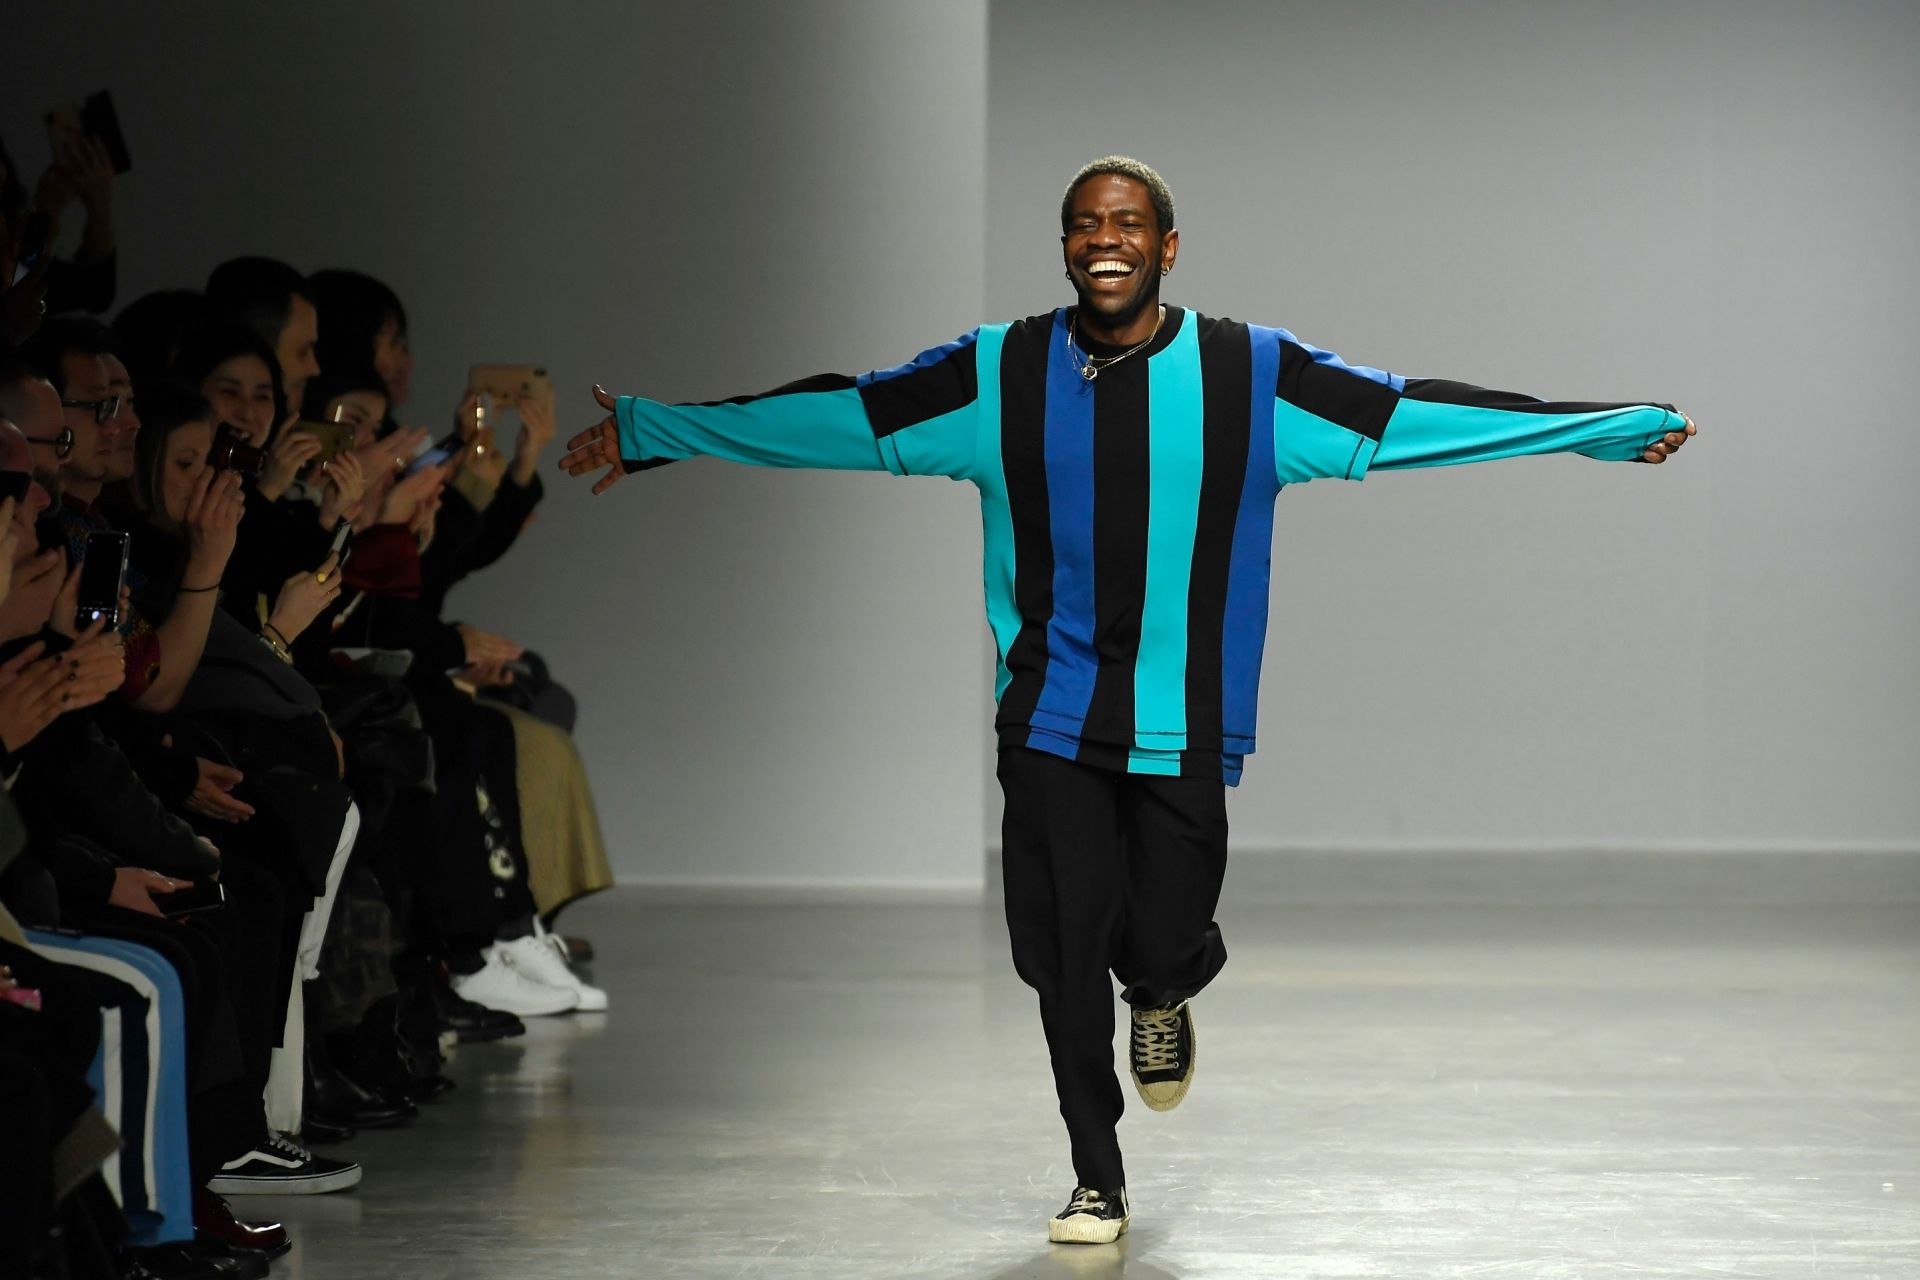 Mandatory Credit: Photo by WWD/Shutterstock (10564594au)Kenneth Ize on the catwalkKenneth Ize show, Runway, Fall Winter 2020, Paris Fashion Week, France - 24 Feb 2020